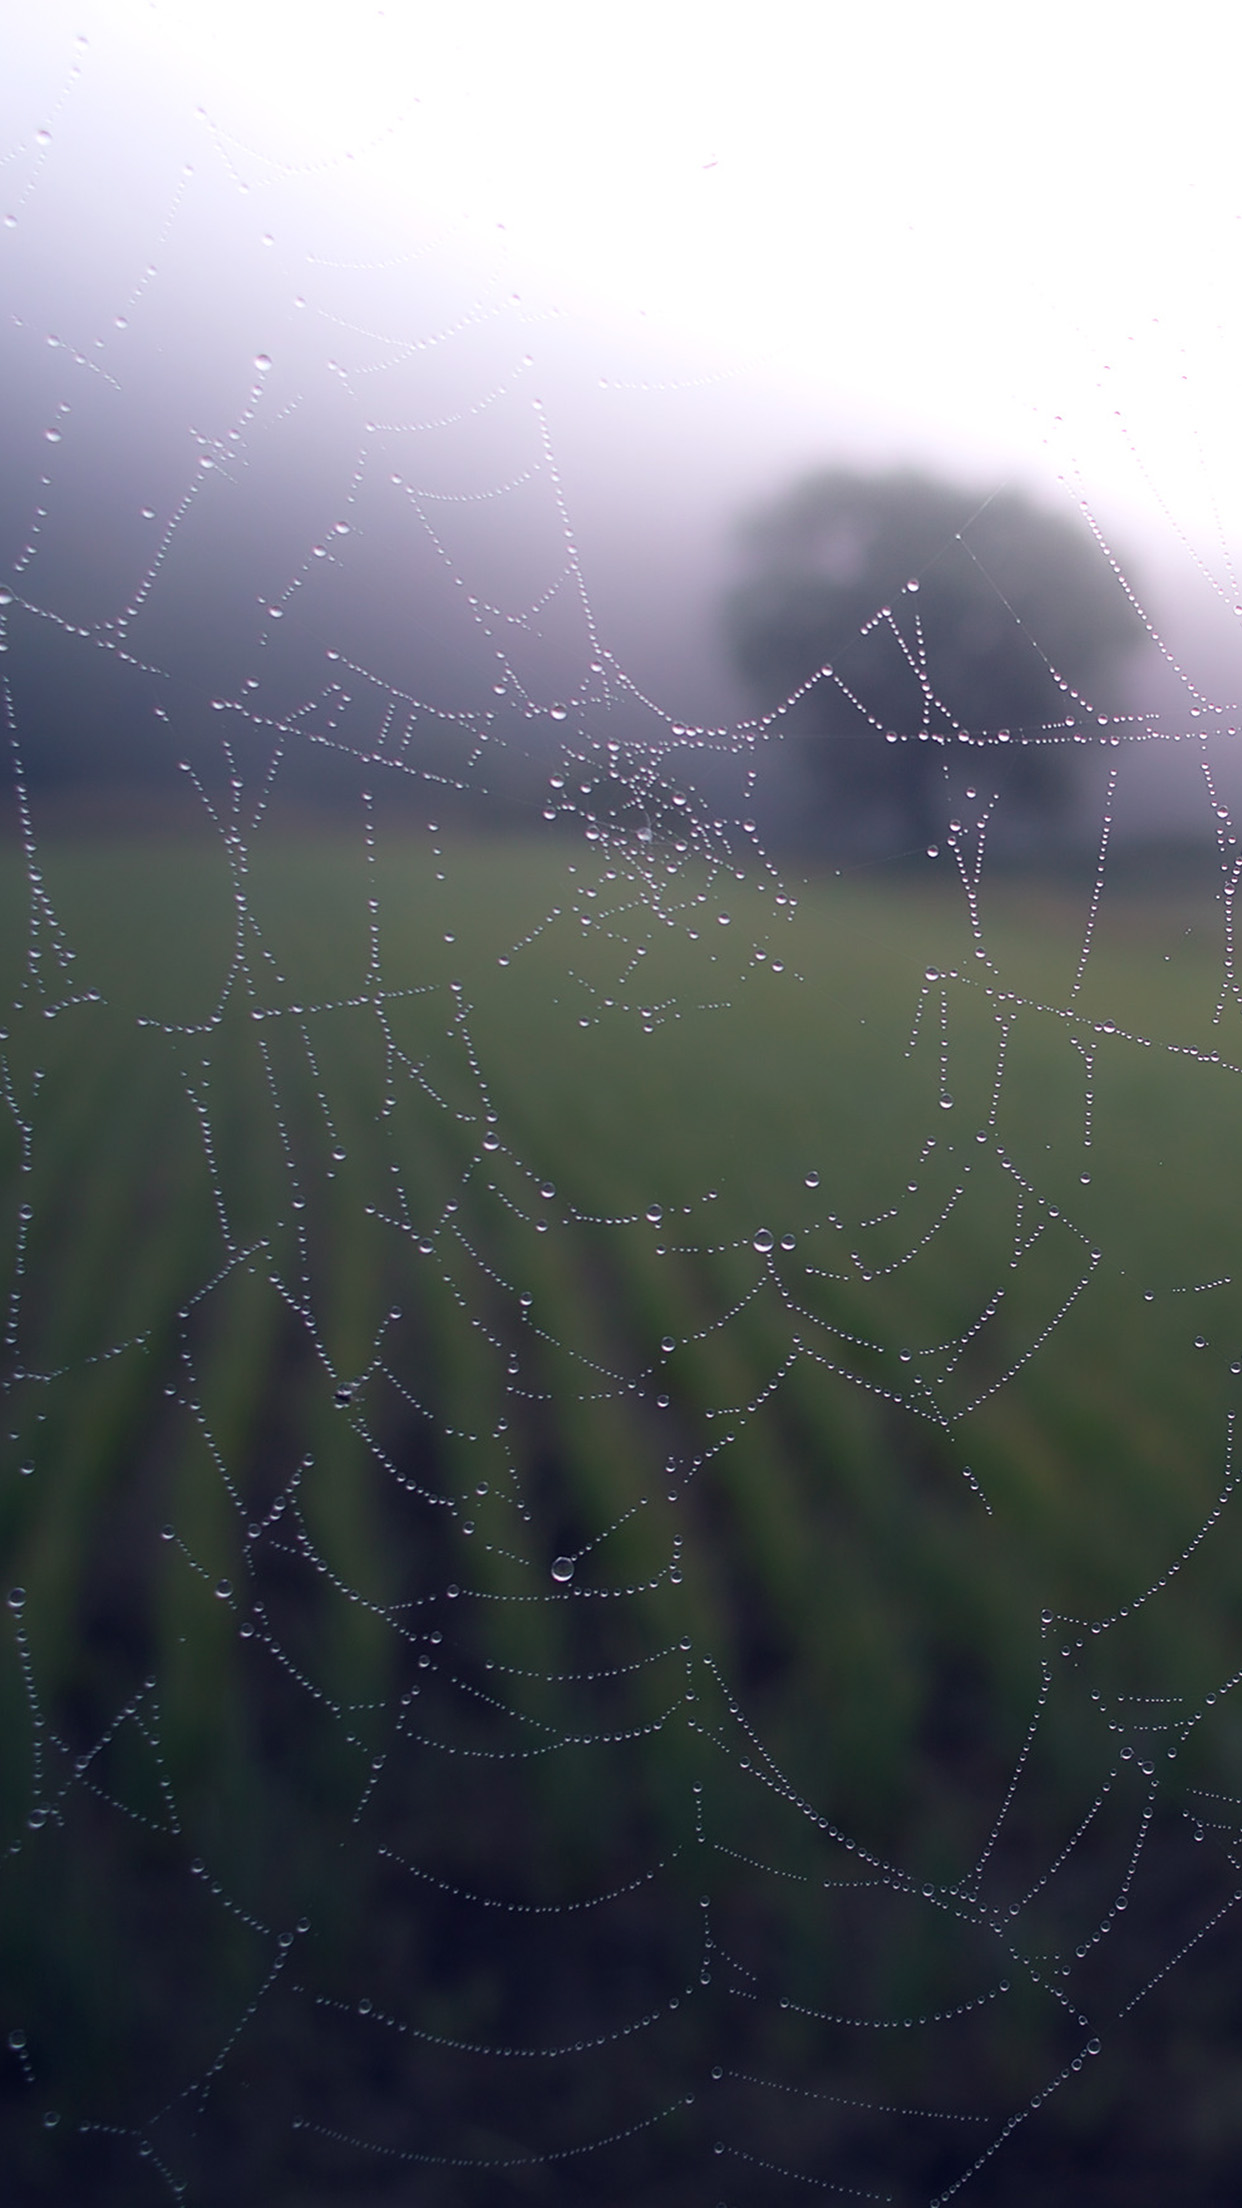 iphone7papers - mv02-morning-dew-spider-web-rain-water-nature